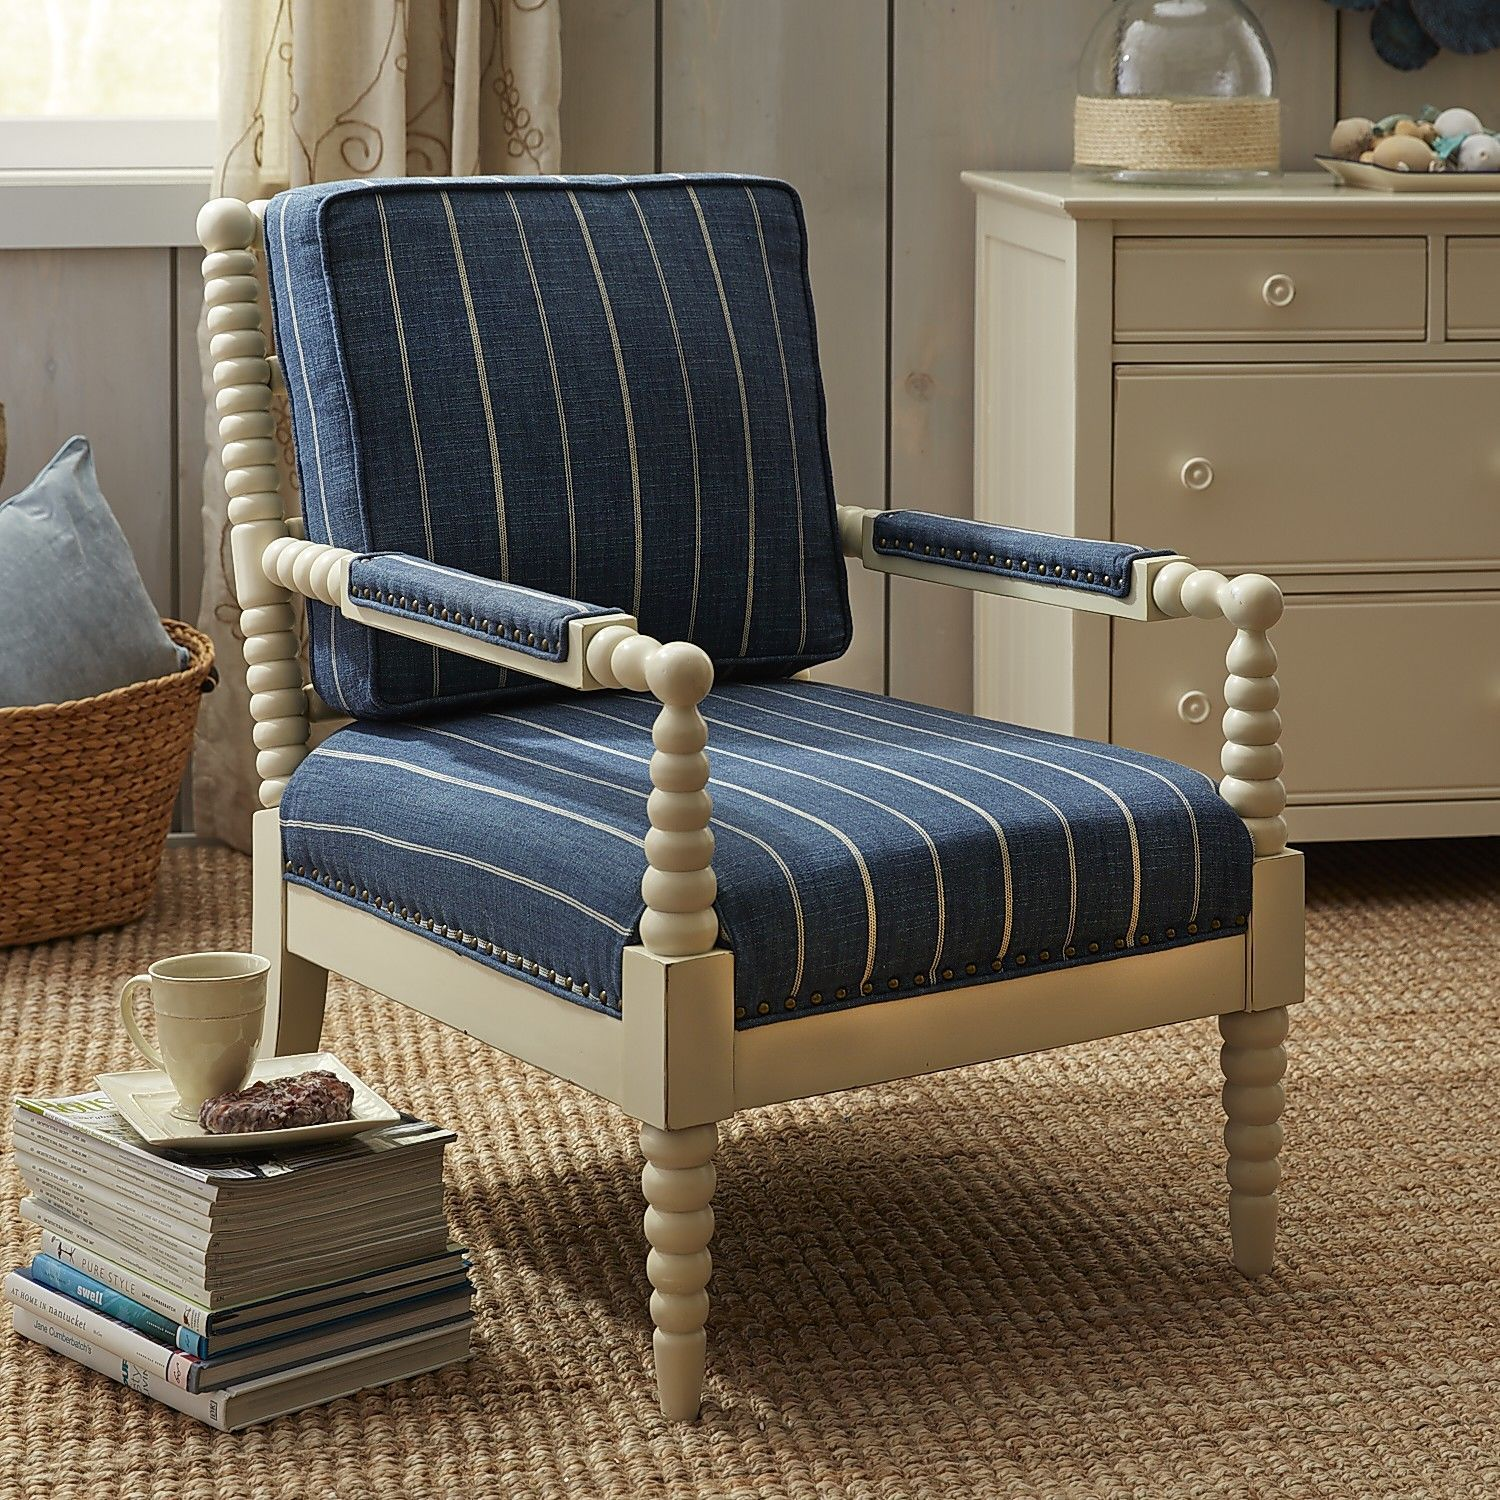 Spindle Arm Chair -- $500 At Pier One. Bobbin Chair